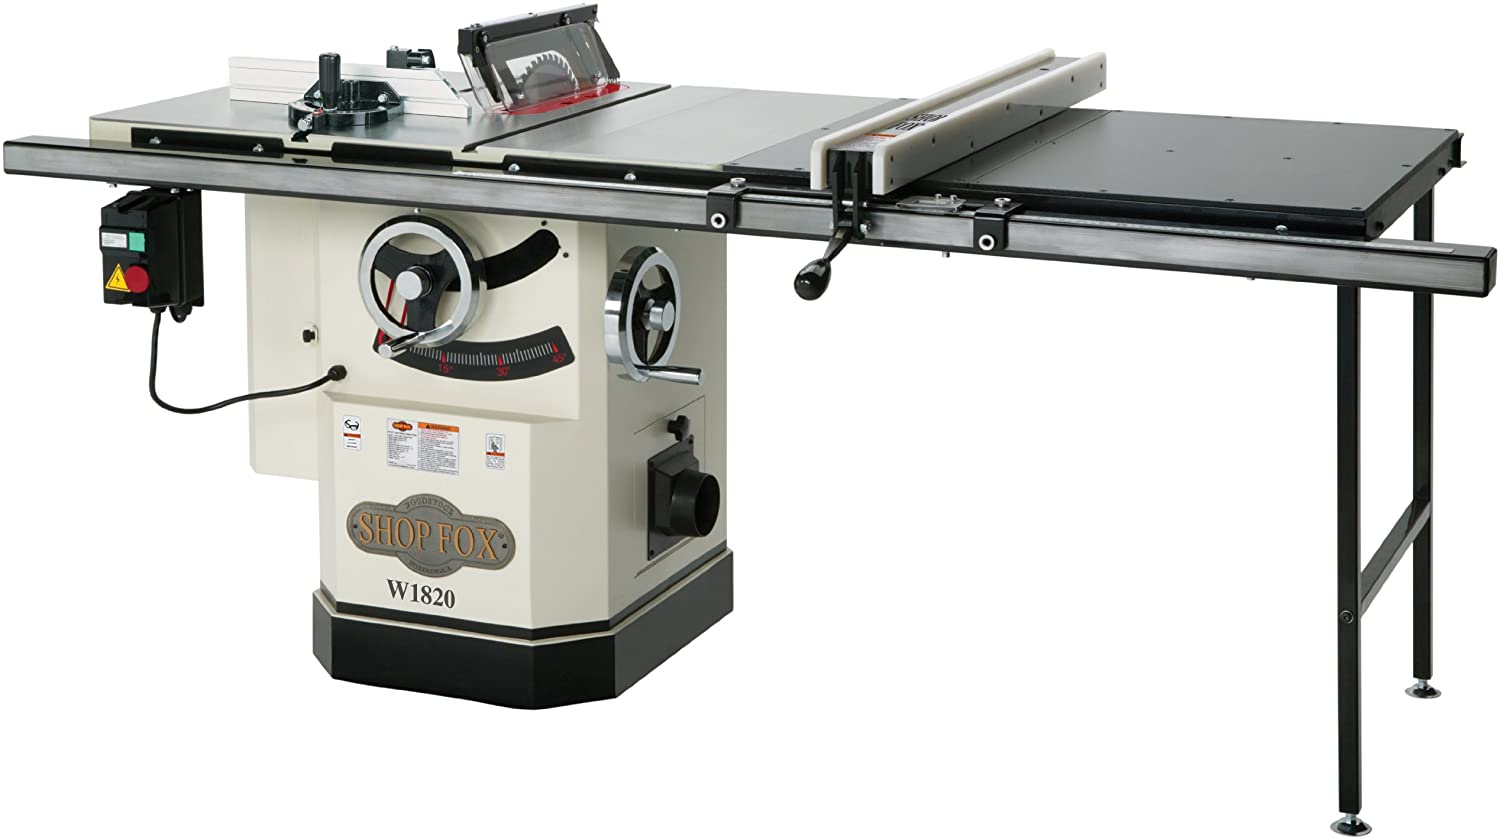 6. Shop Fox 10-Inch Table Saw